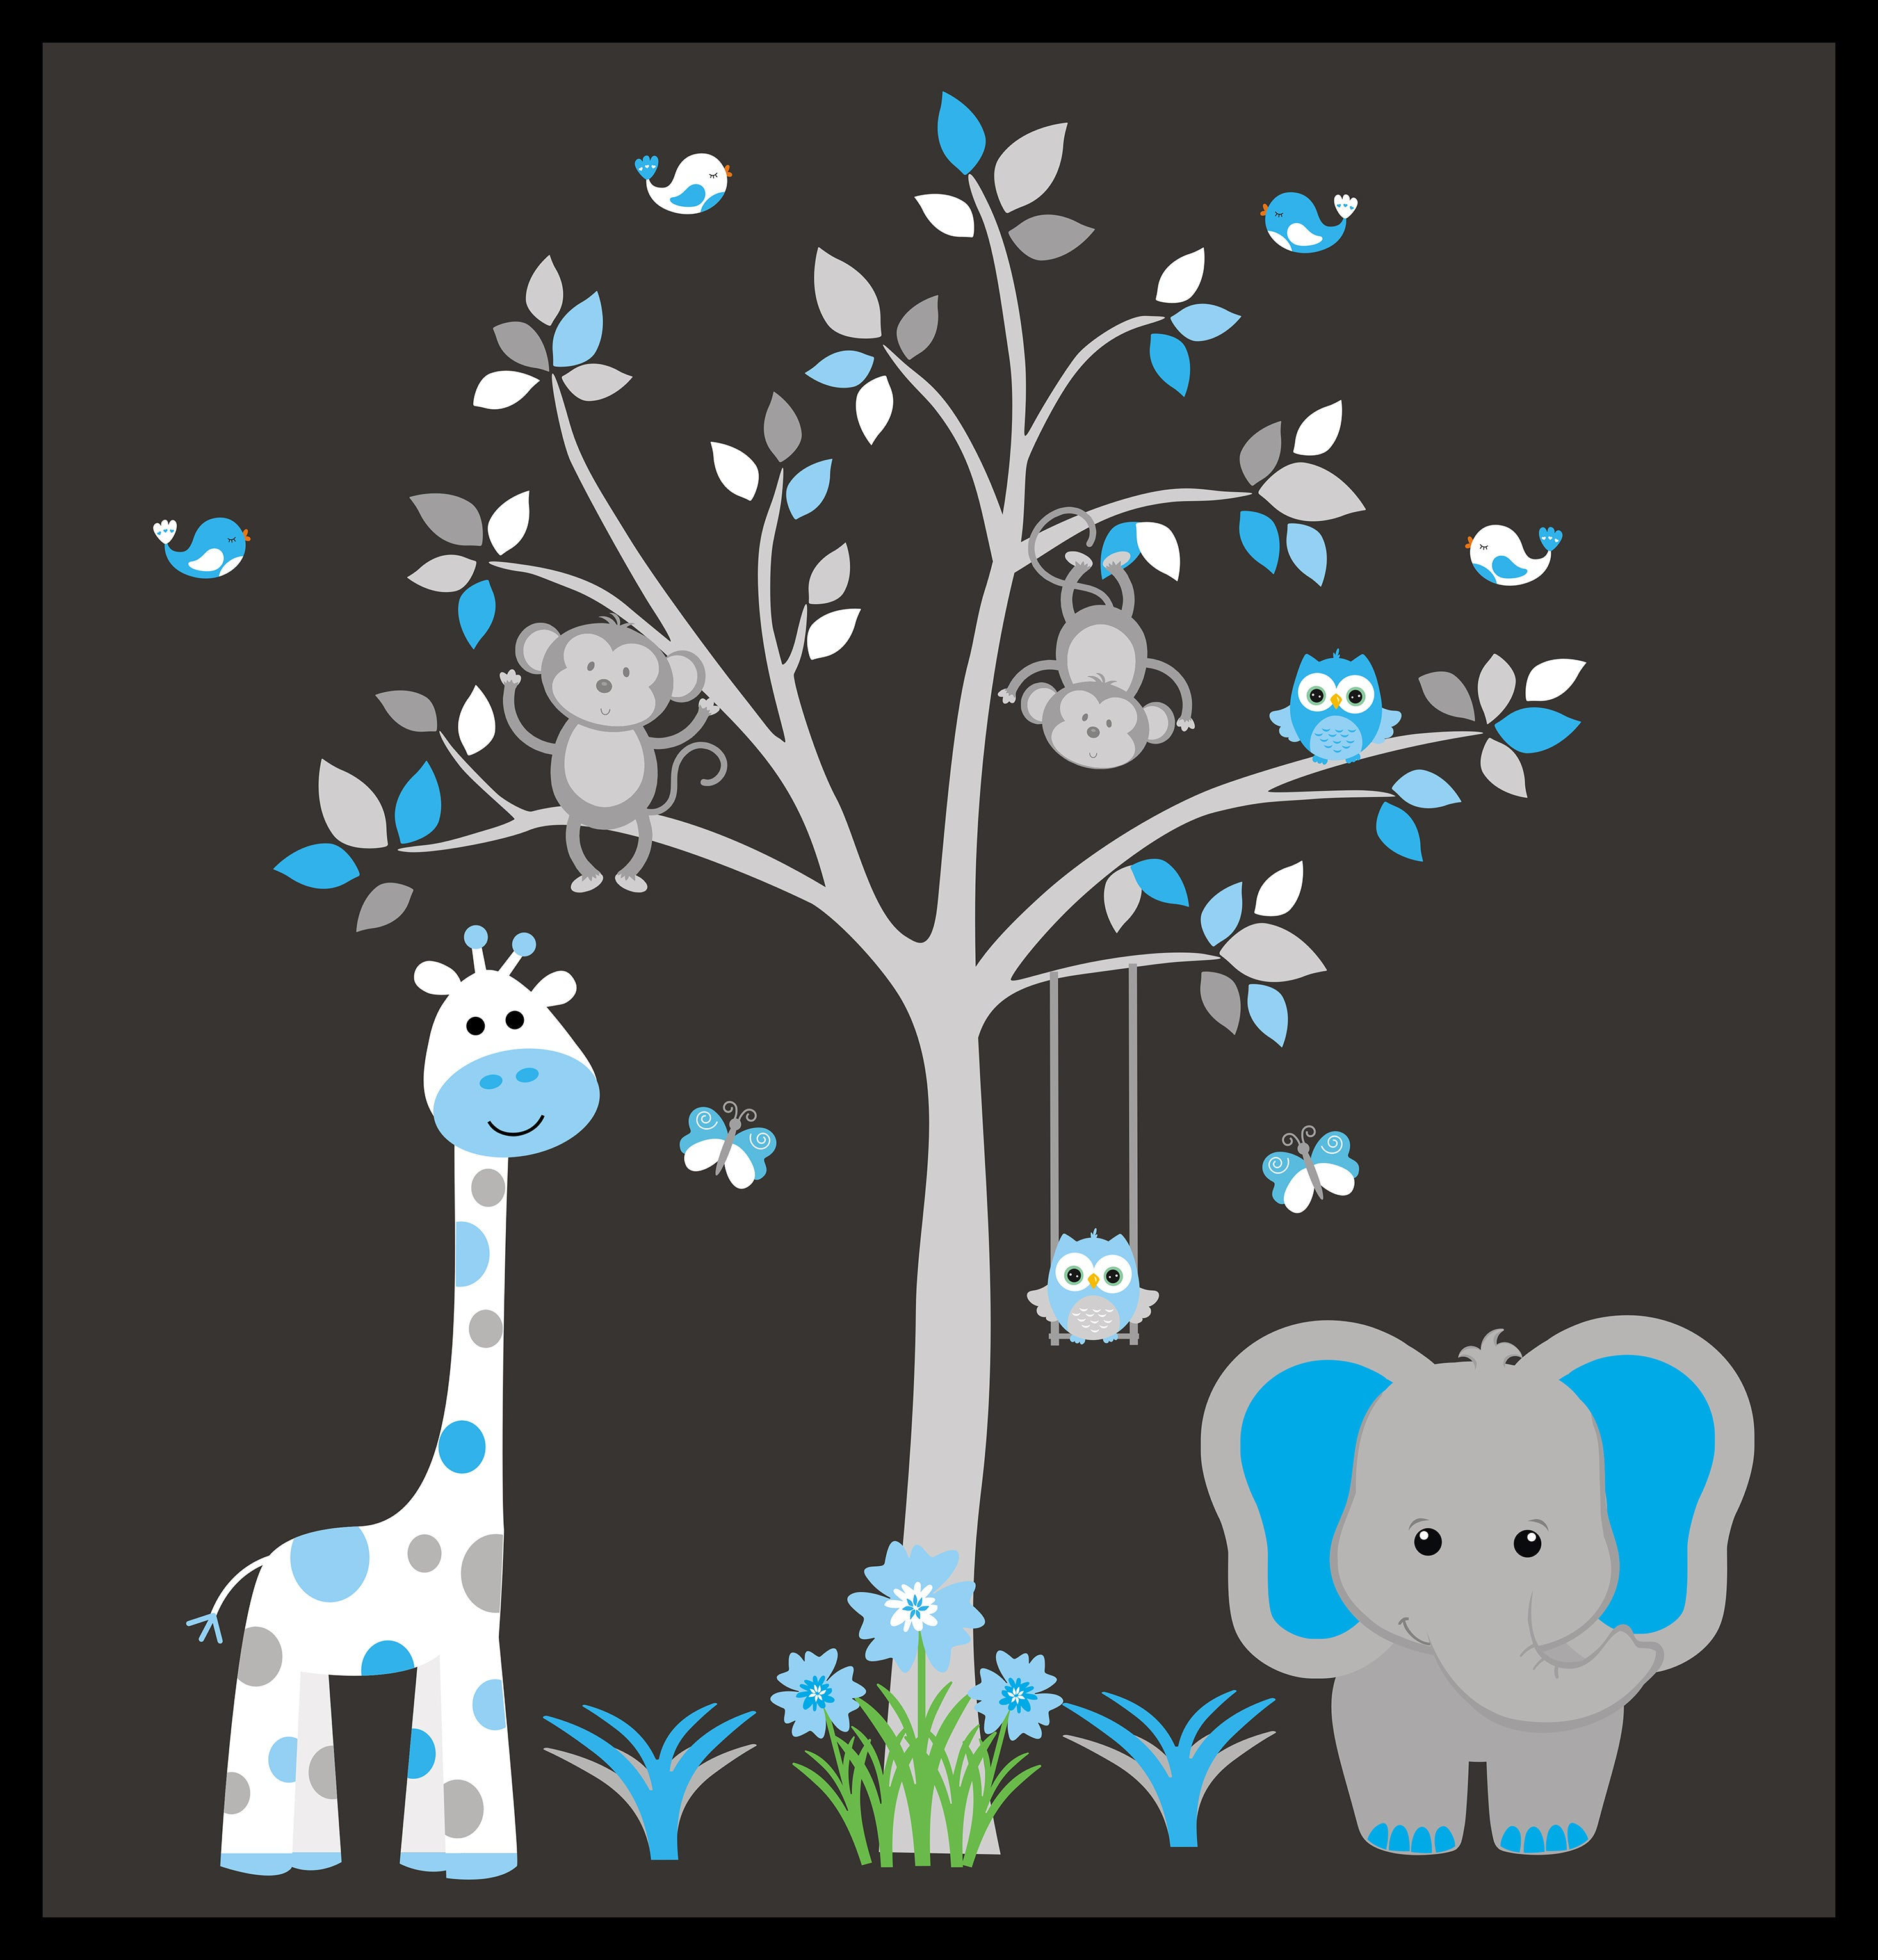 Nursery Wall Decals   Safari Animal Wall Decals   Nature Wall Decals   Blue  Animal Decals